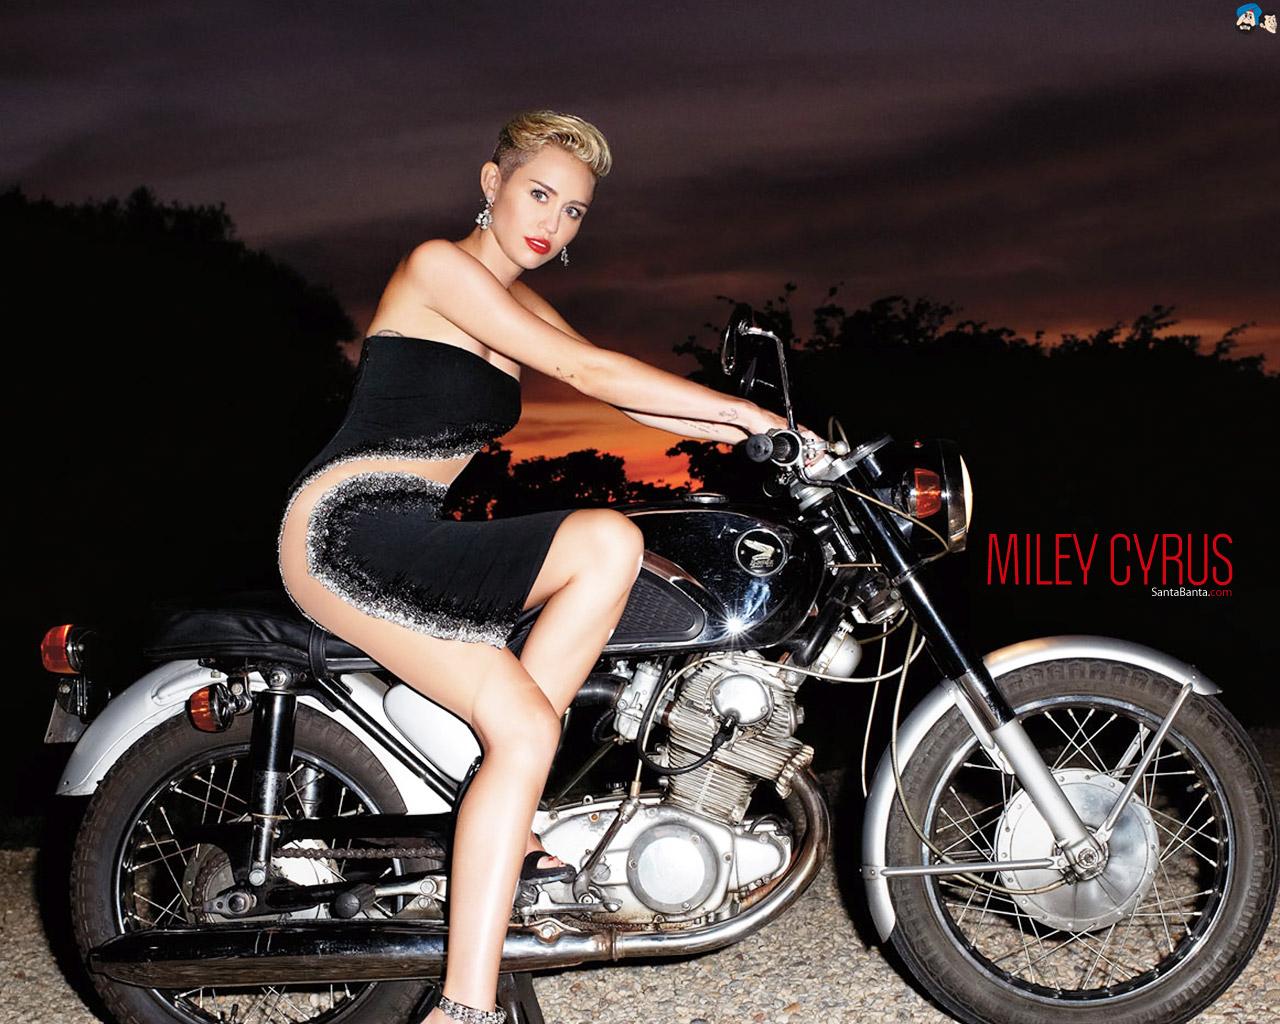 Miley Cyrus Wallpapers 2015 Full HD Pictures 1280x1024